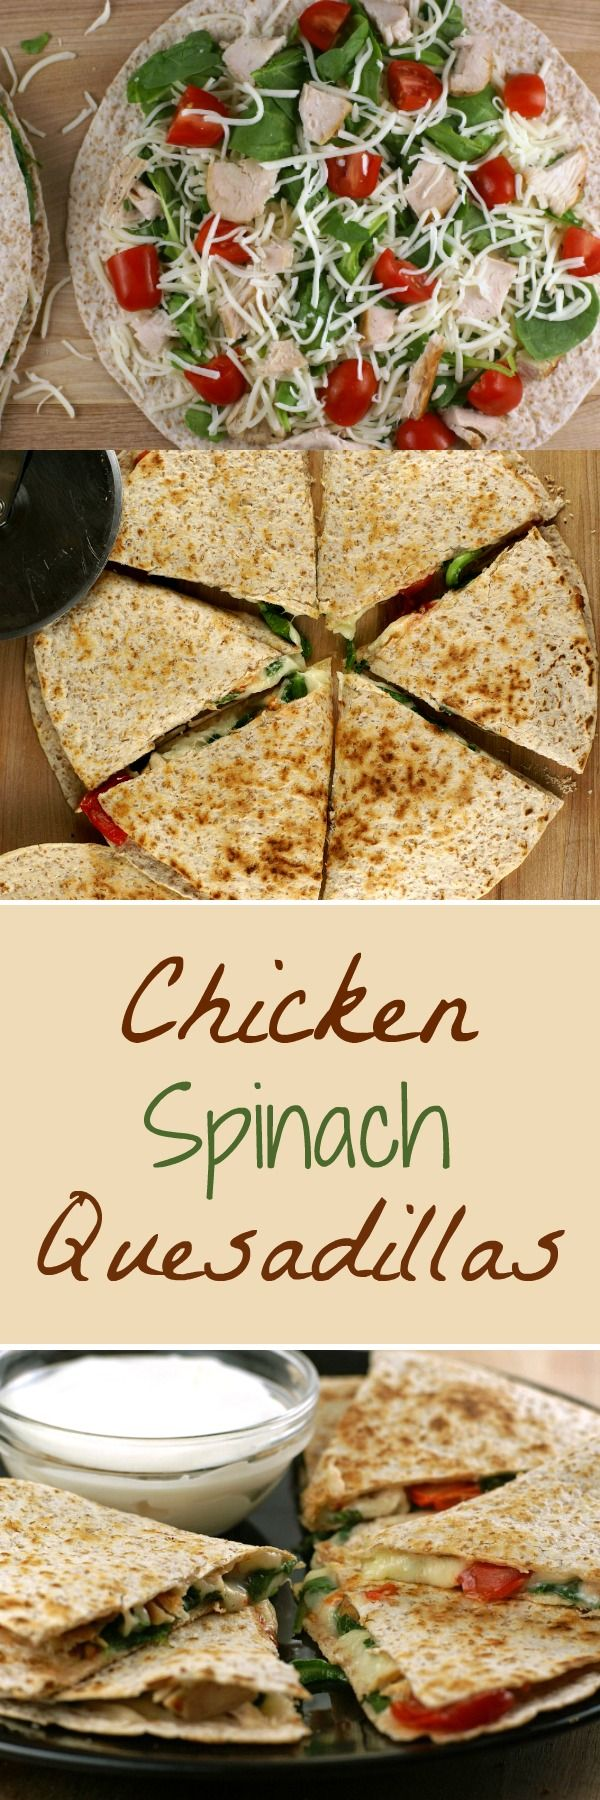 Chicken and Spinach Quesadillas | 5DollarDinners.com